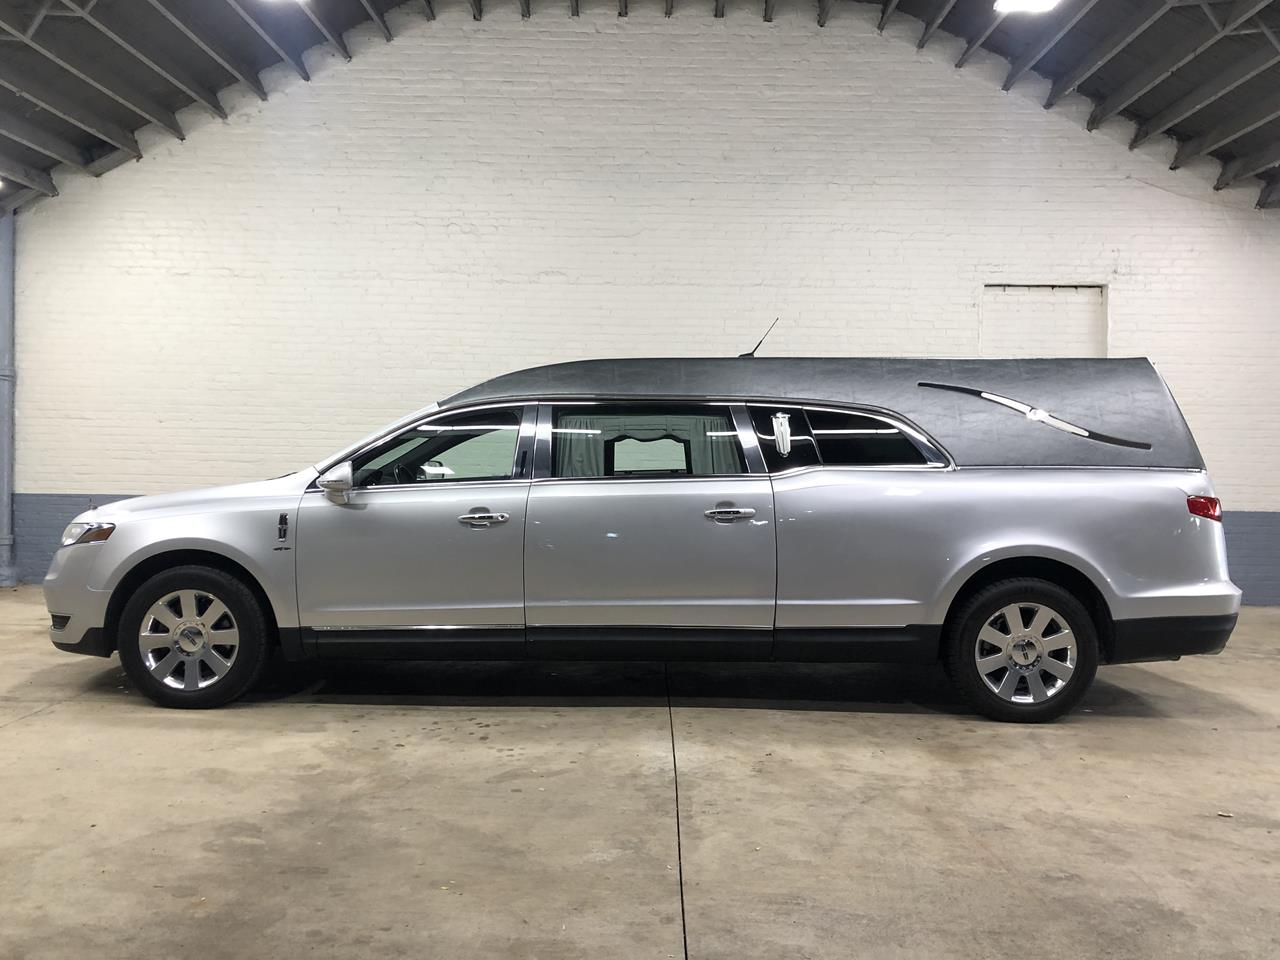 2014 Lincoln Eagle ICON Hearse